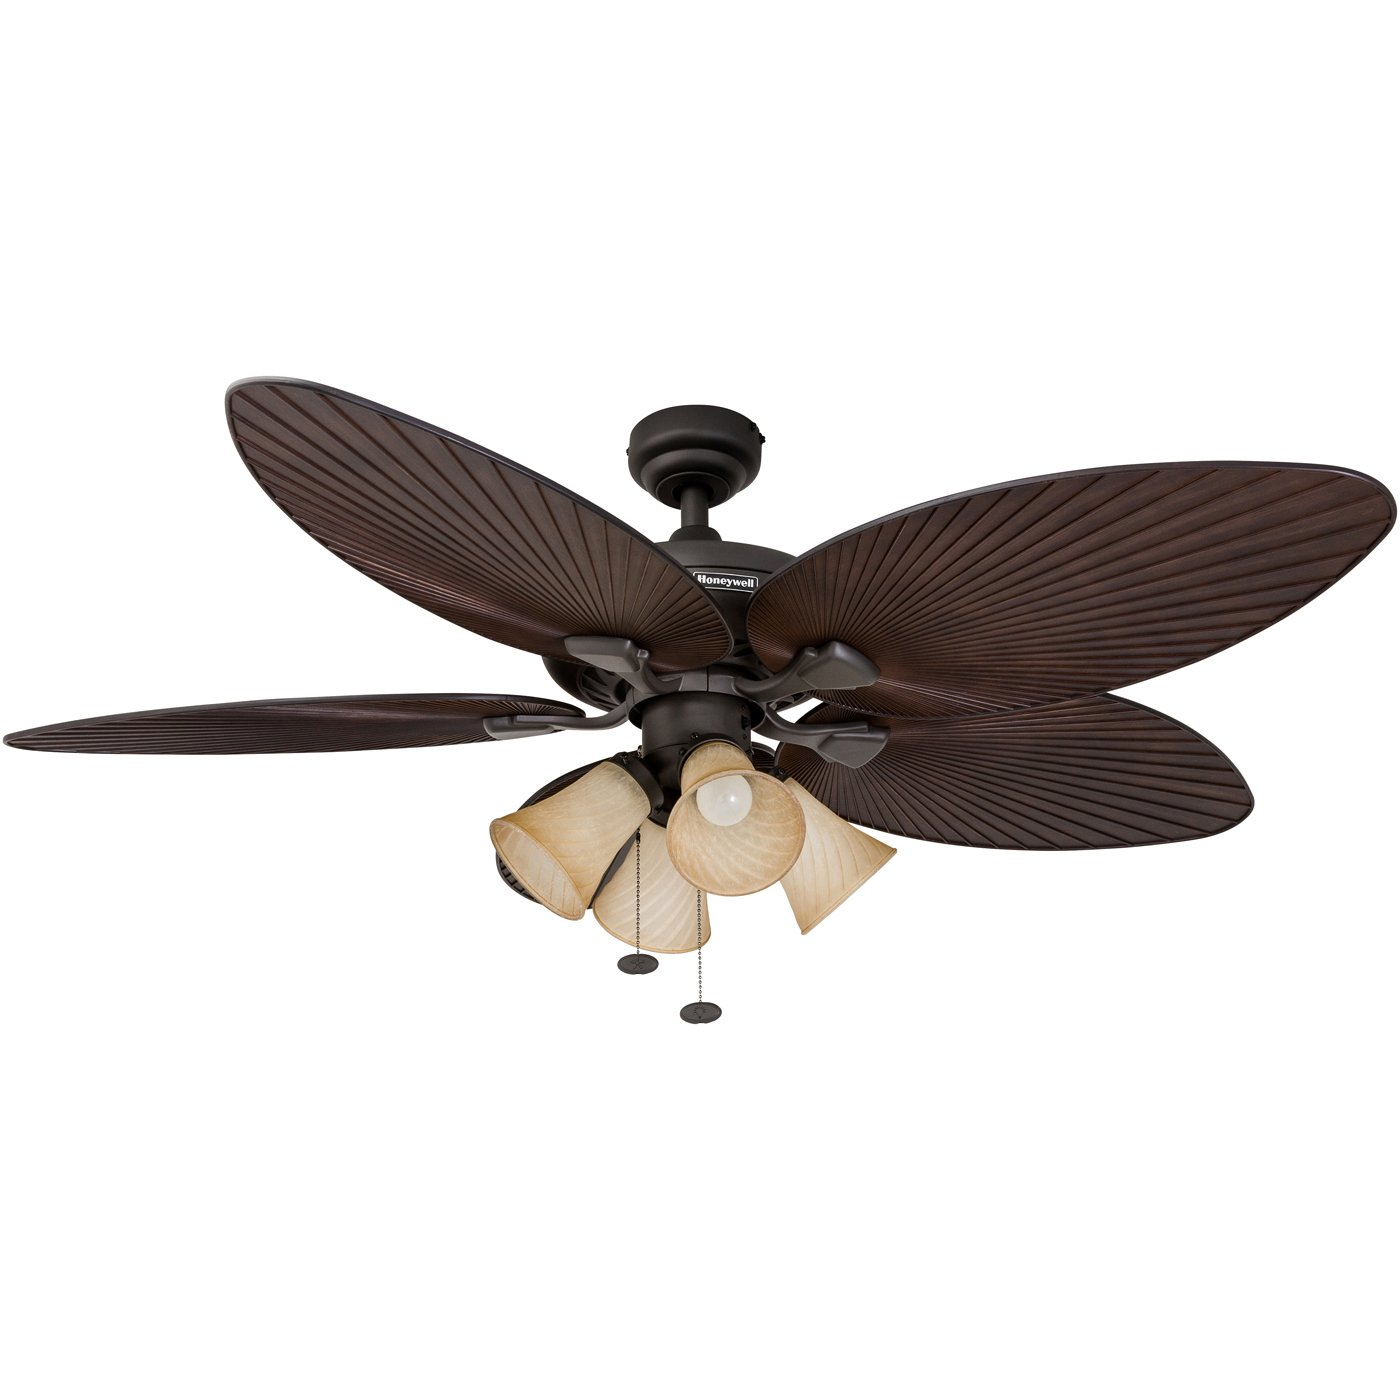 Honeywell Palm Island 52-Inch Tropical Ceiling Fan with 4 Sunset Shade Lights, Five Palm Leaf Blades, Indoor/Outdoor, Oil-Rubbed Bronze